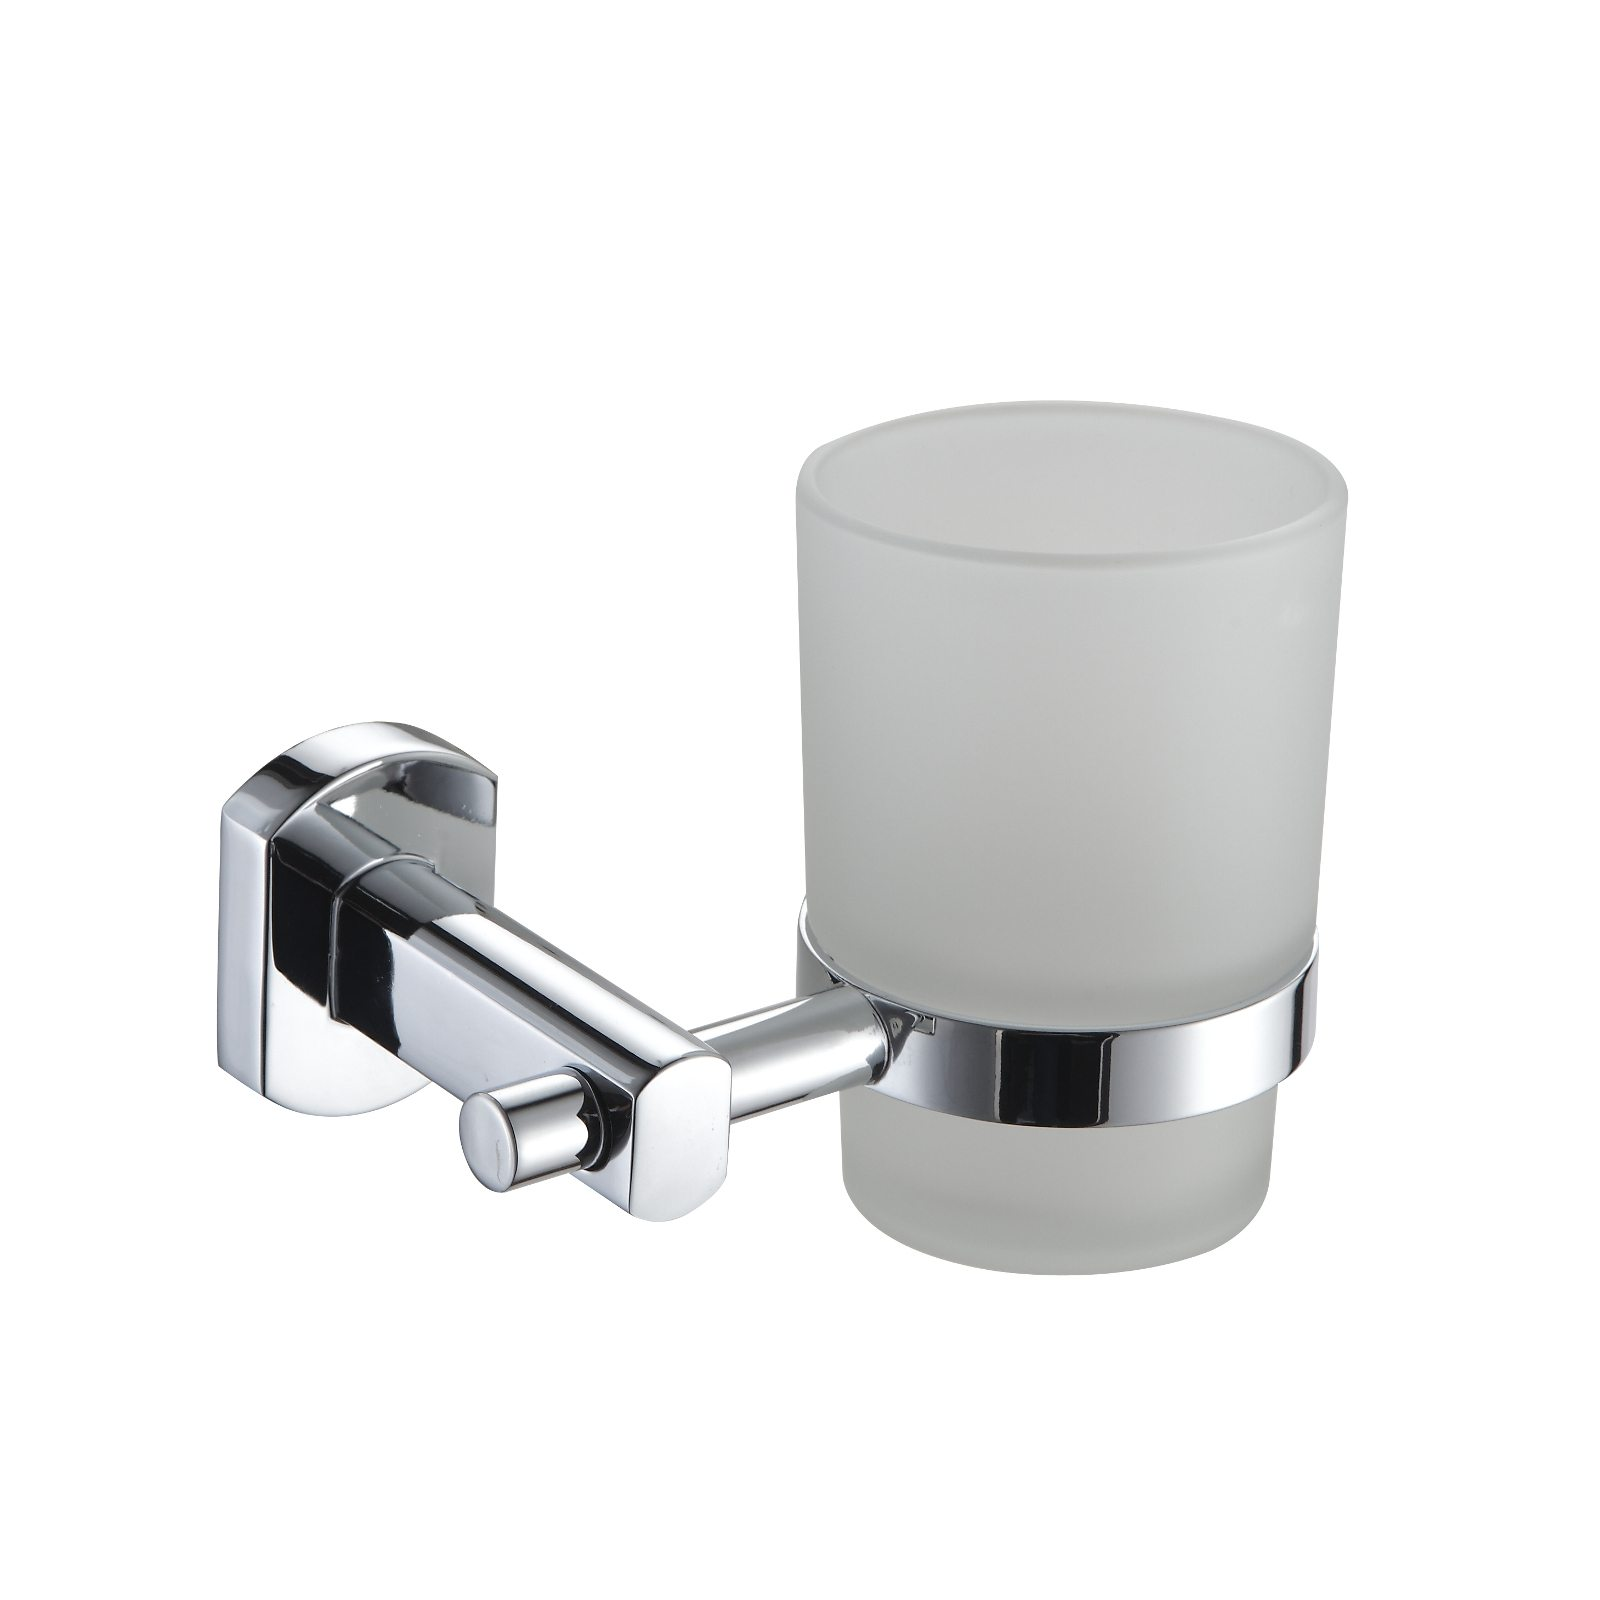 Toothbrush Holder Wall Mount